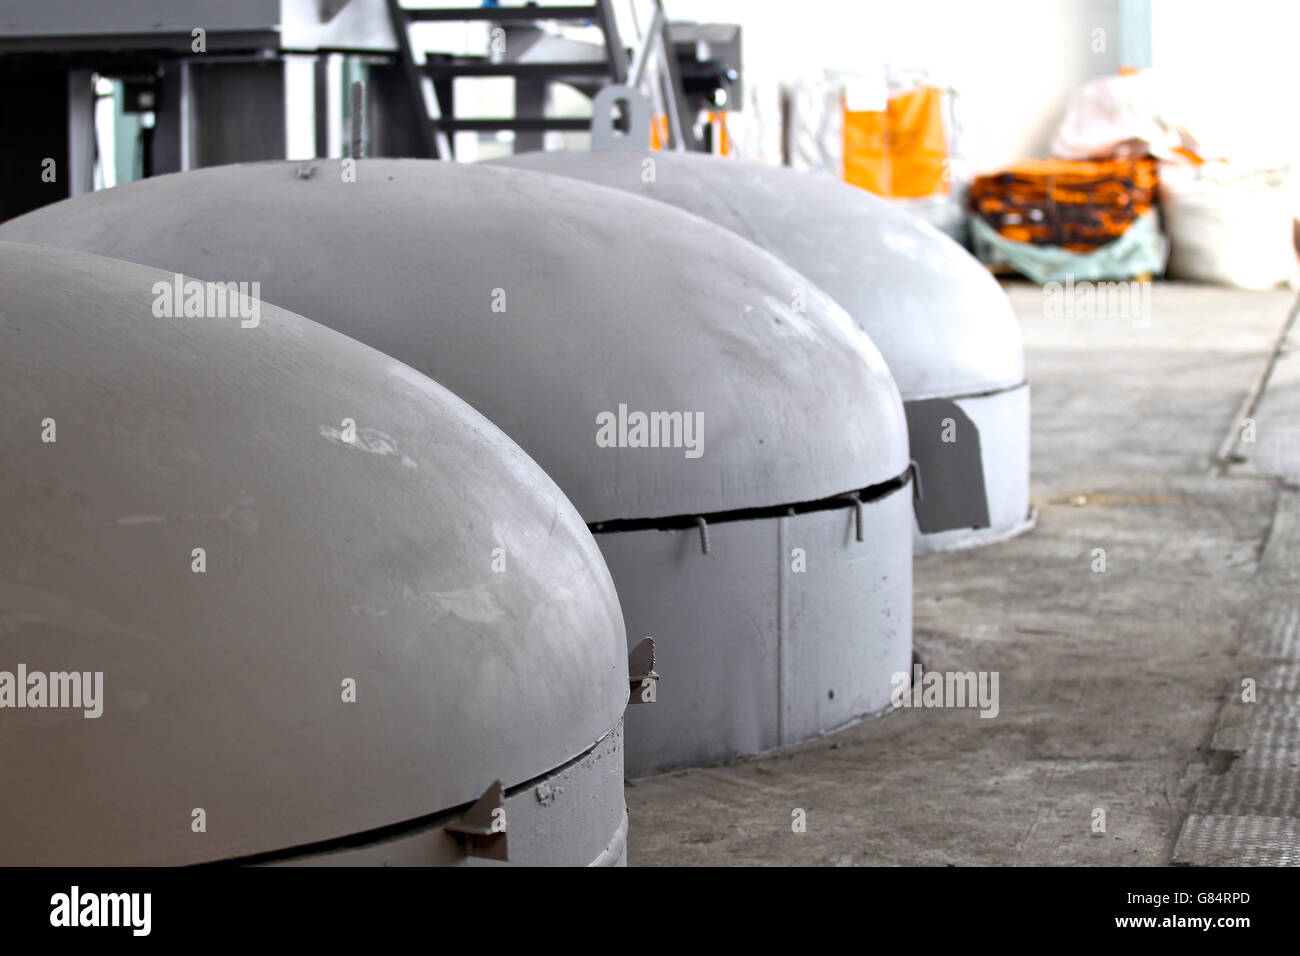 visible part of the capacity for heat treatment of metal - Stock Image